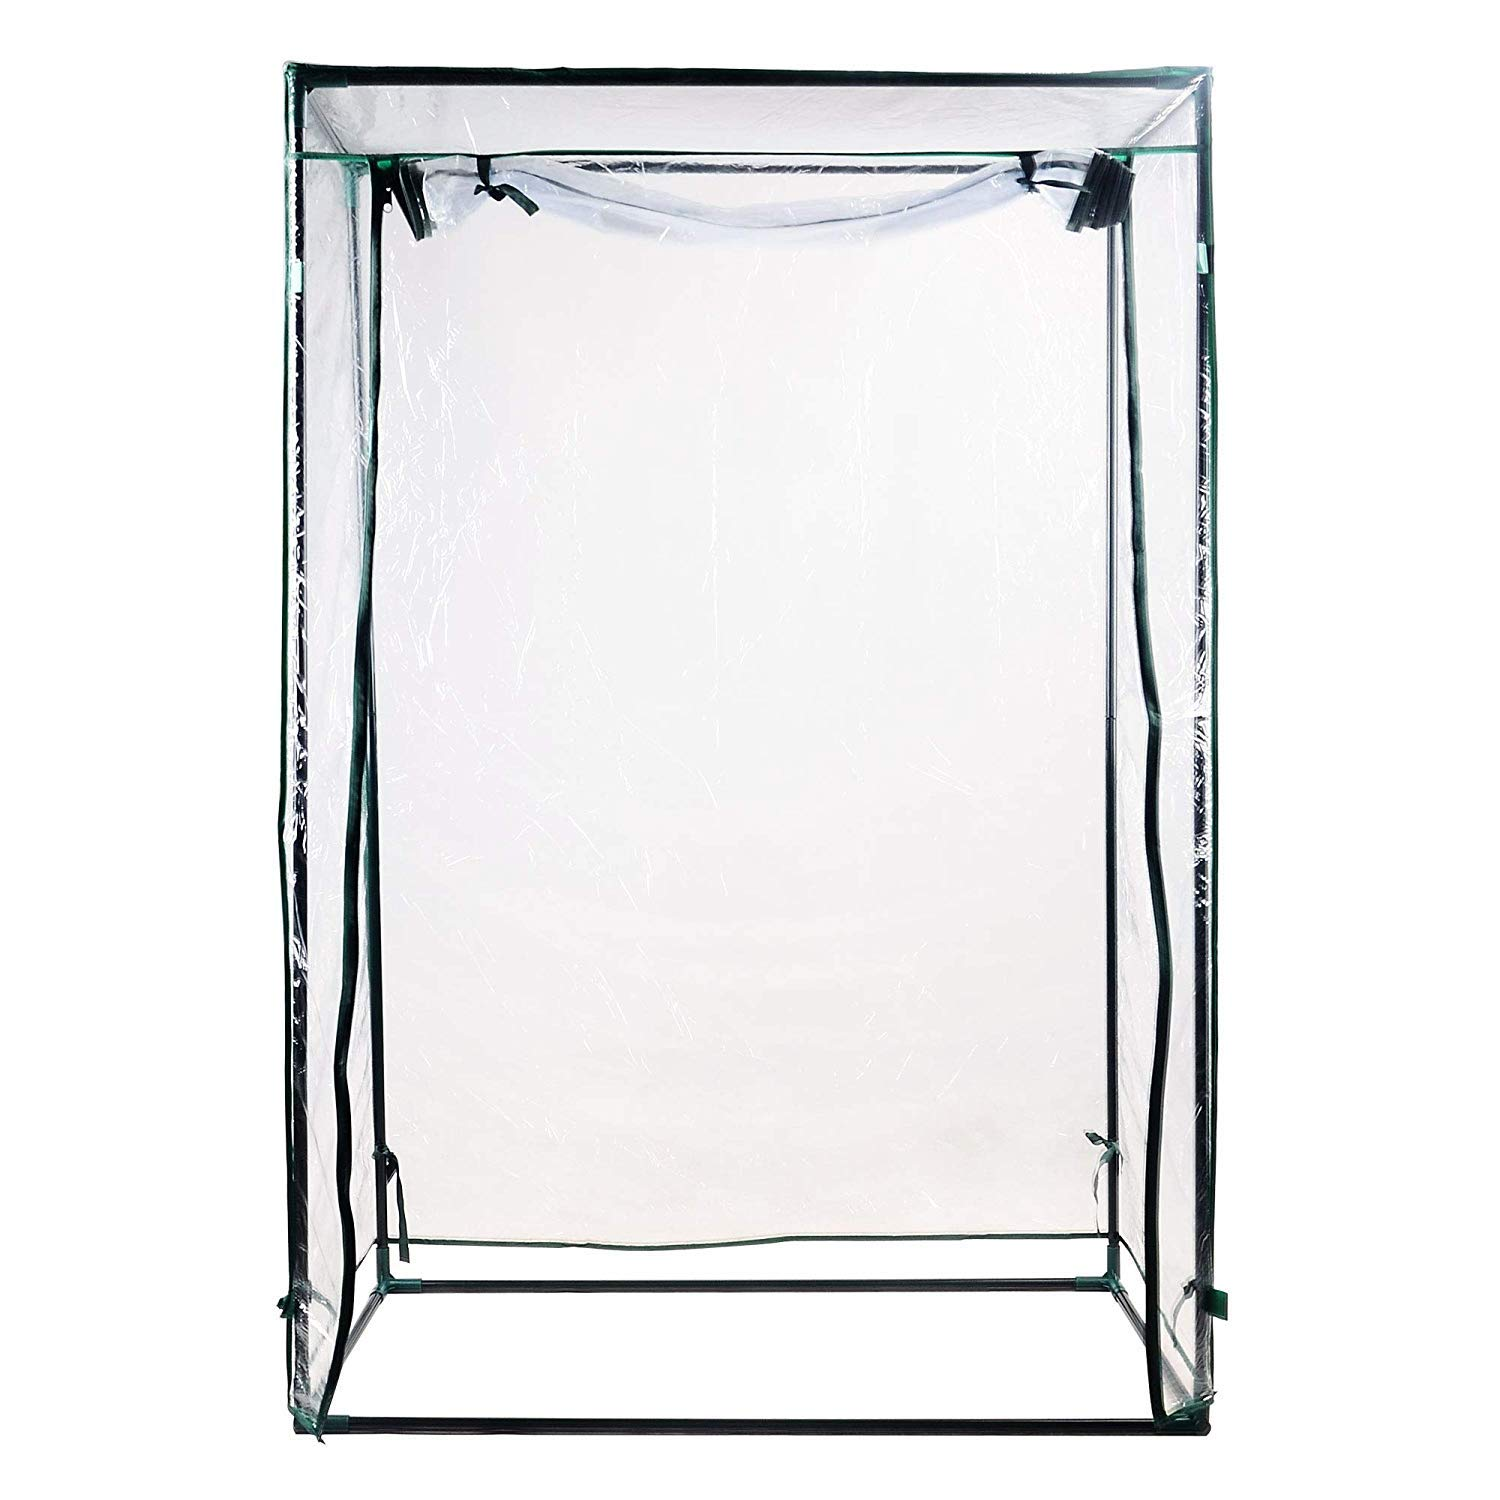 H&B Luxuries 59'' Tall Outdoor Garden Mini Greenhouse for Upright Plants GH8109 by H&B Luxuries (Image #1)